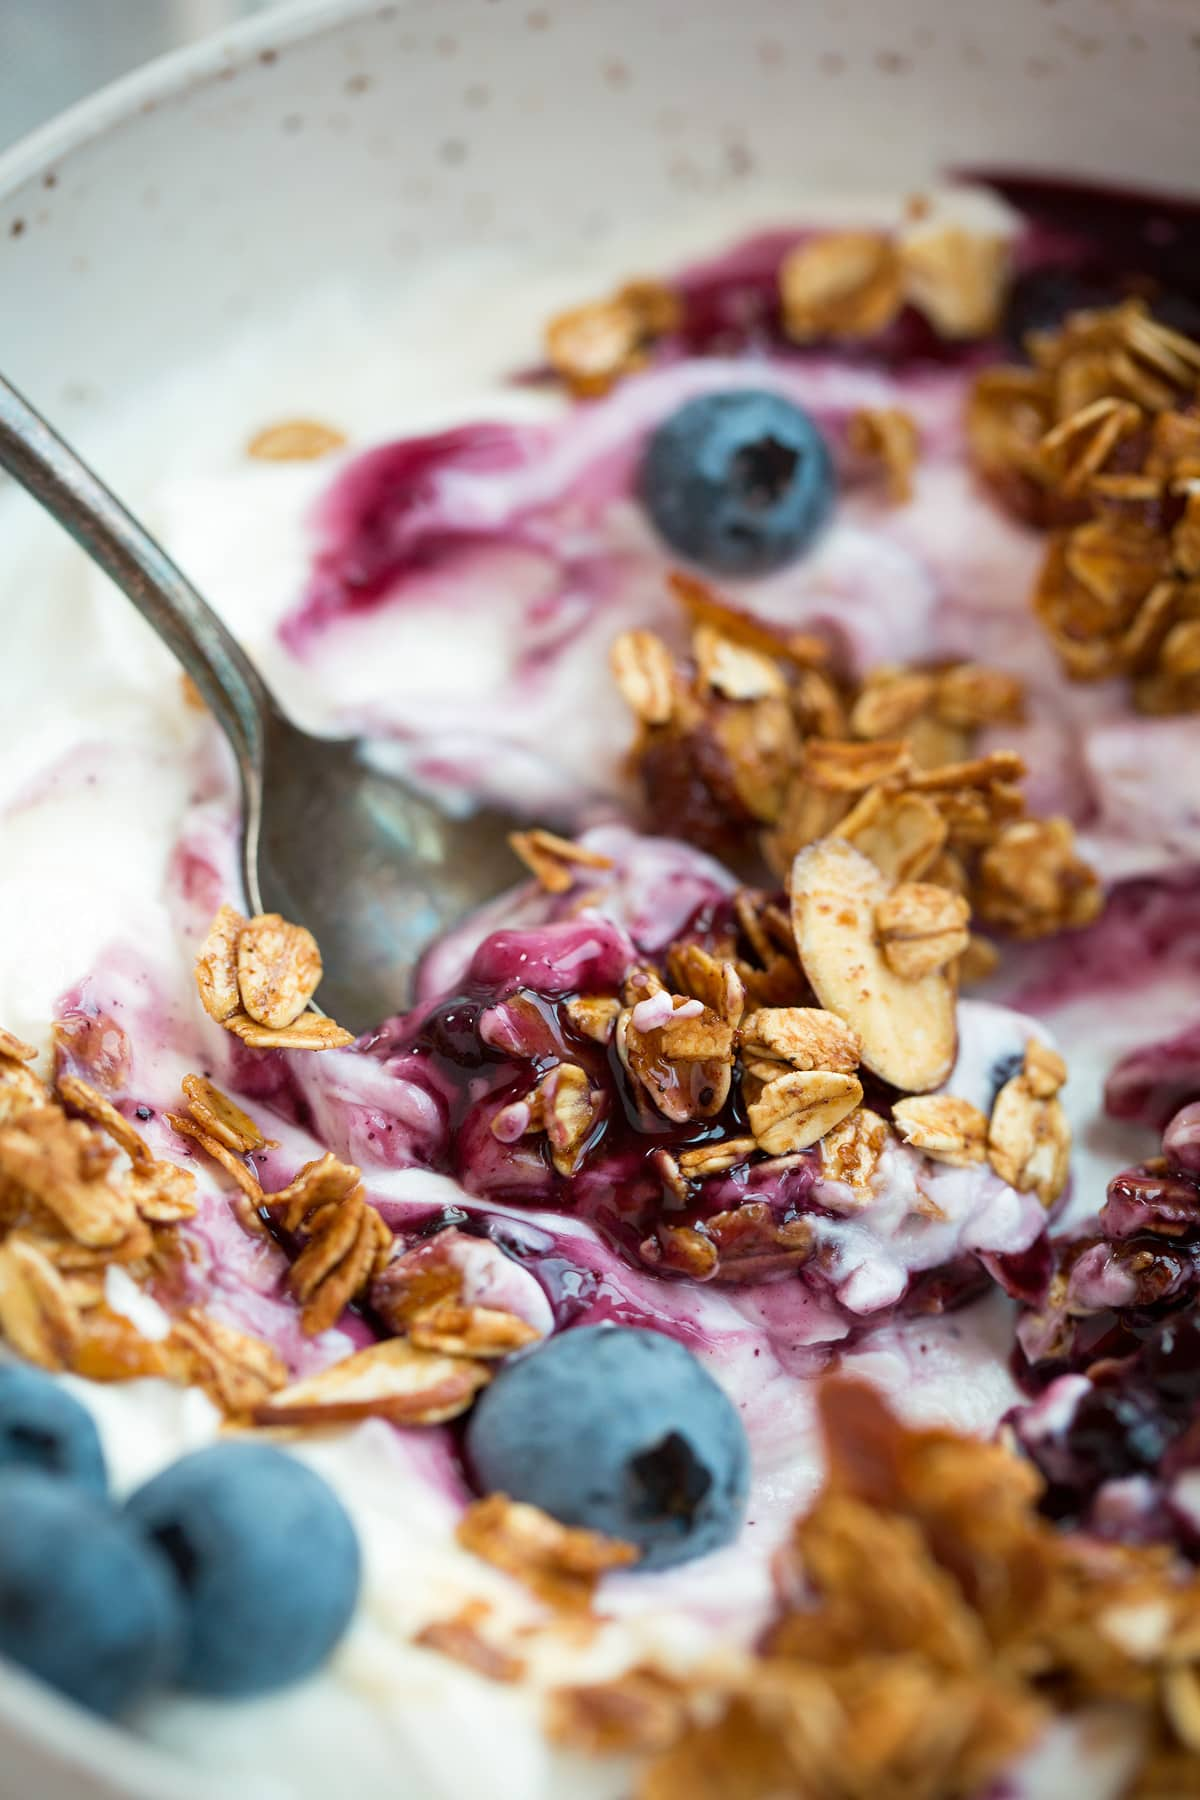 Close up image of granola with yogurt, berries and blueberry sauce.